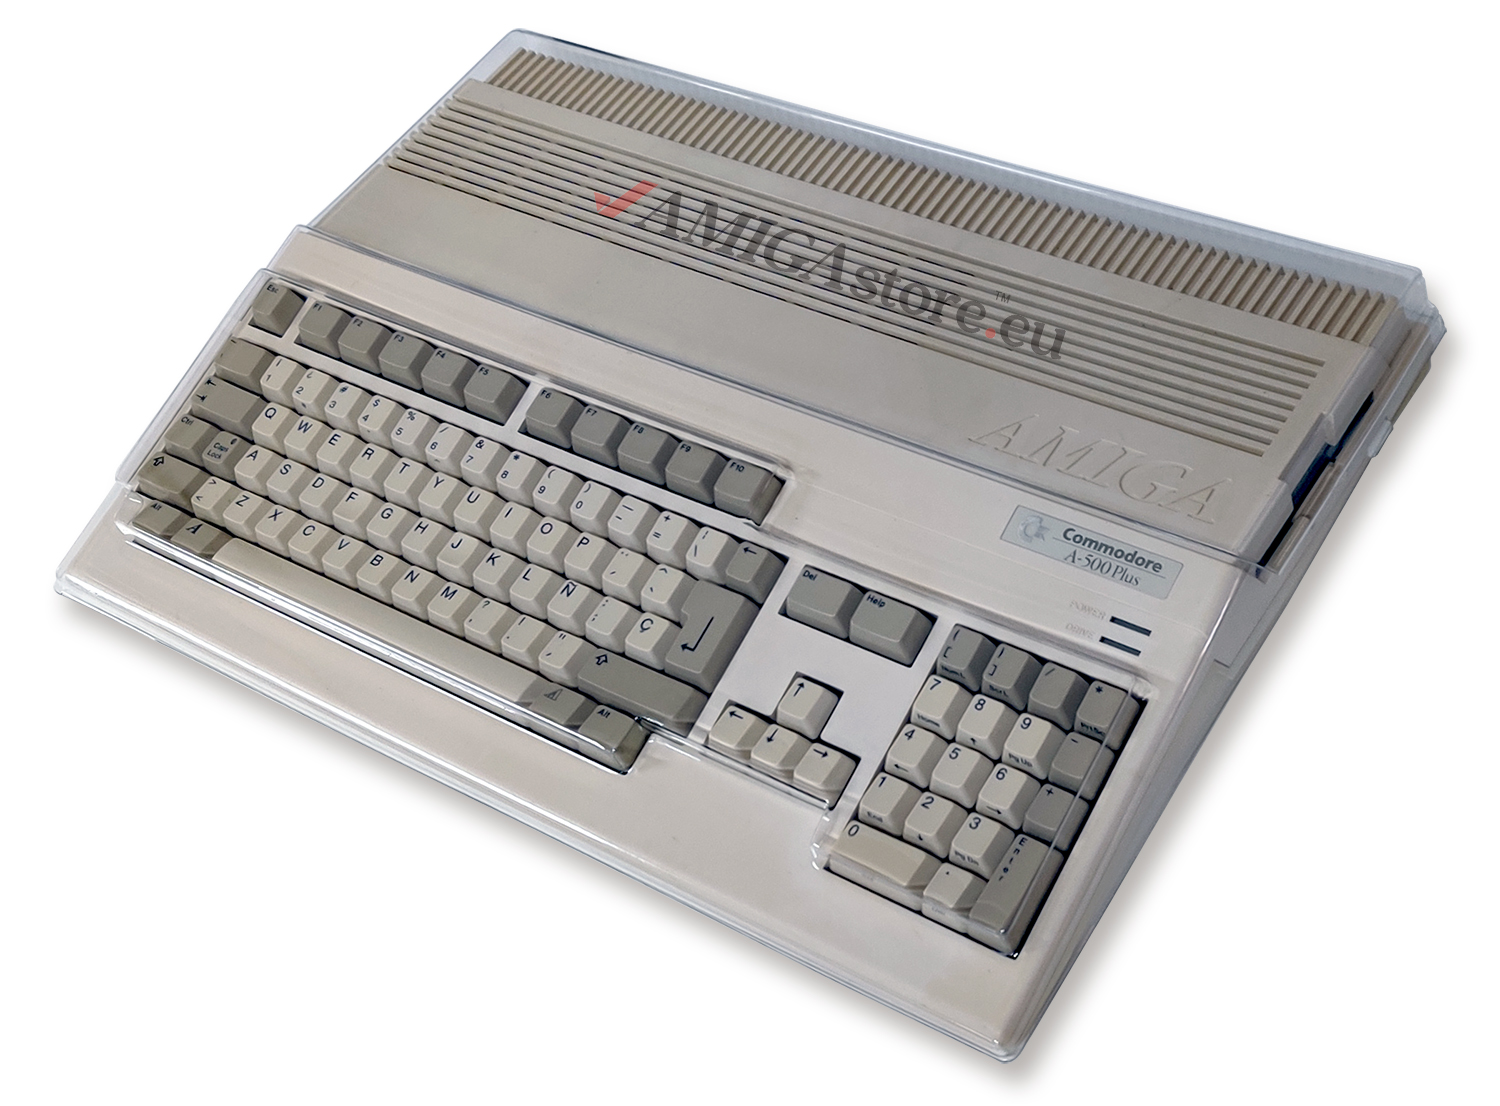 Amiga 500 Dust Cover